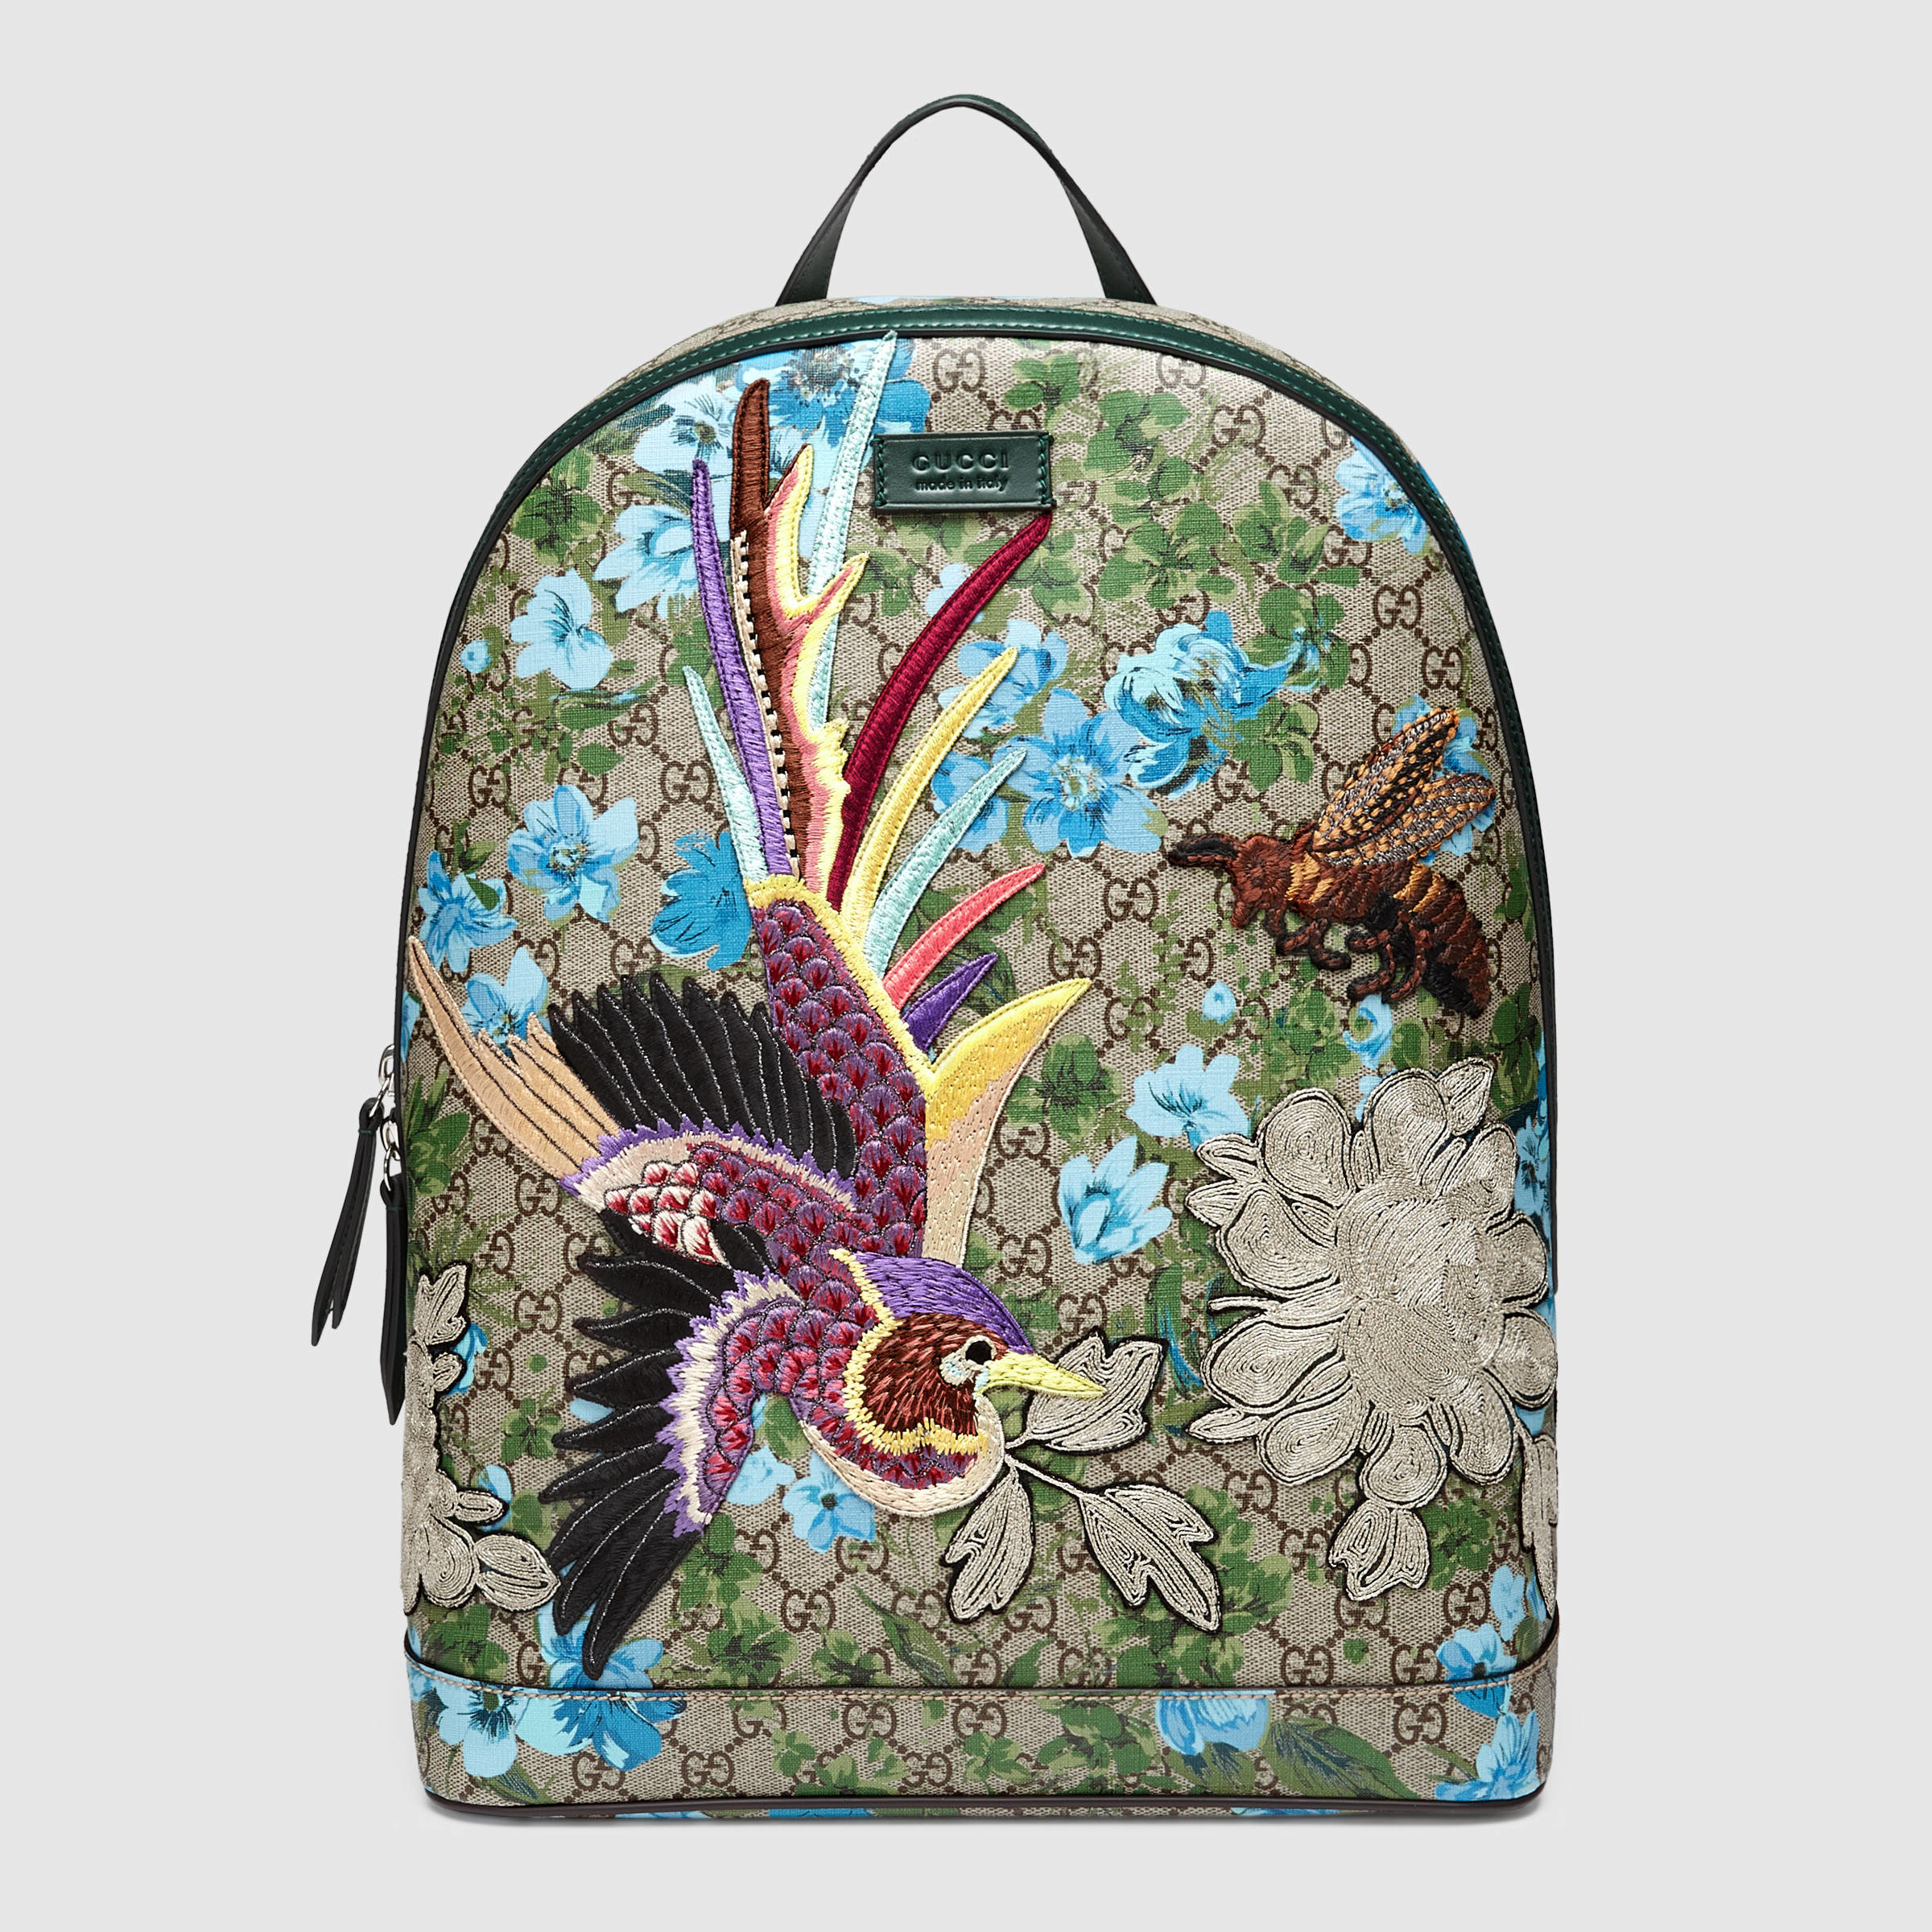 Gucci Xl Gg Floral Print Backpack For Men | Lyst